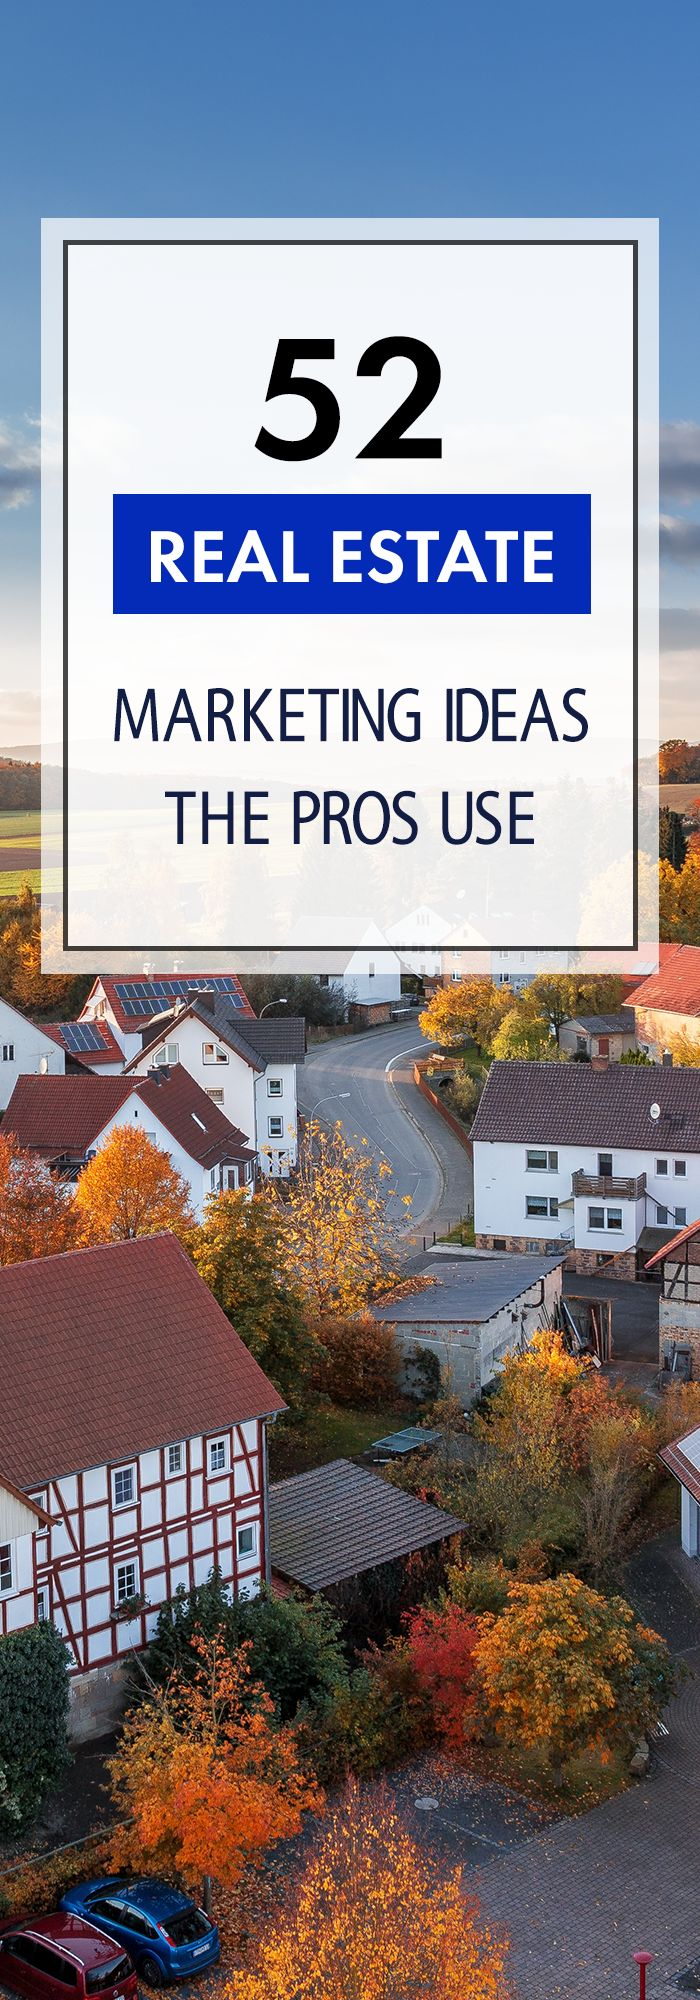 The 52 best real estate marketing ideas and tips from the pros for 2017!